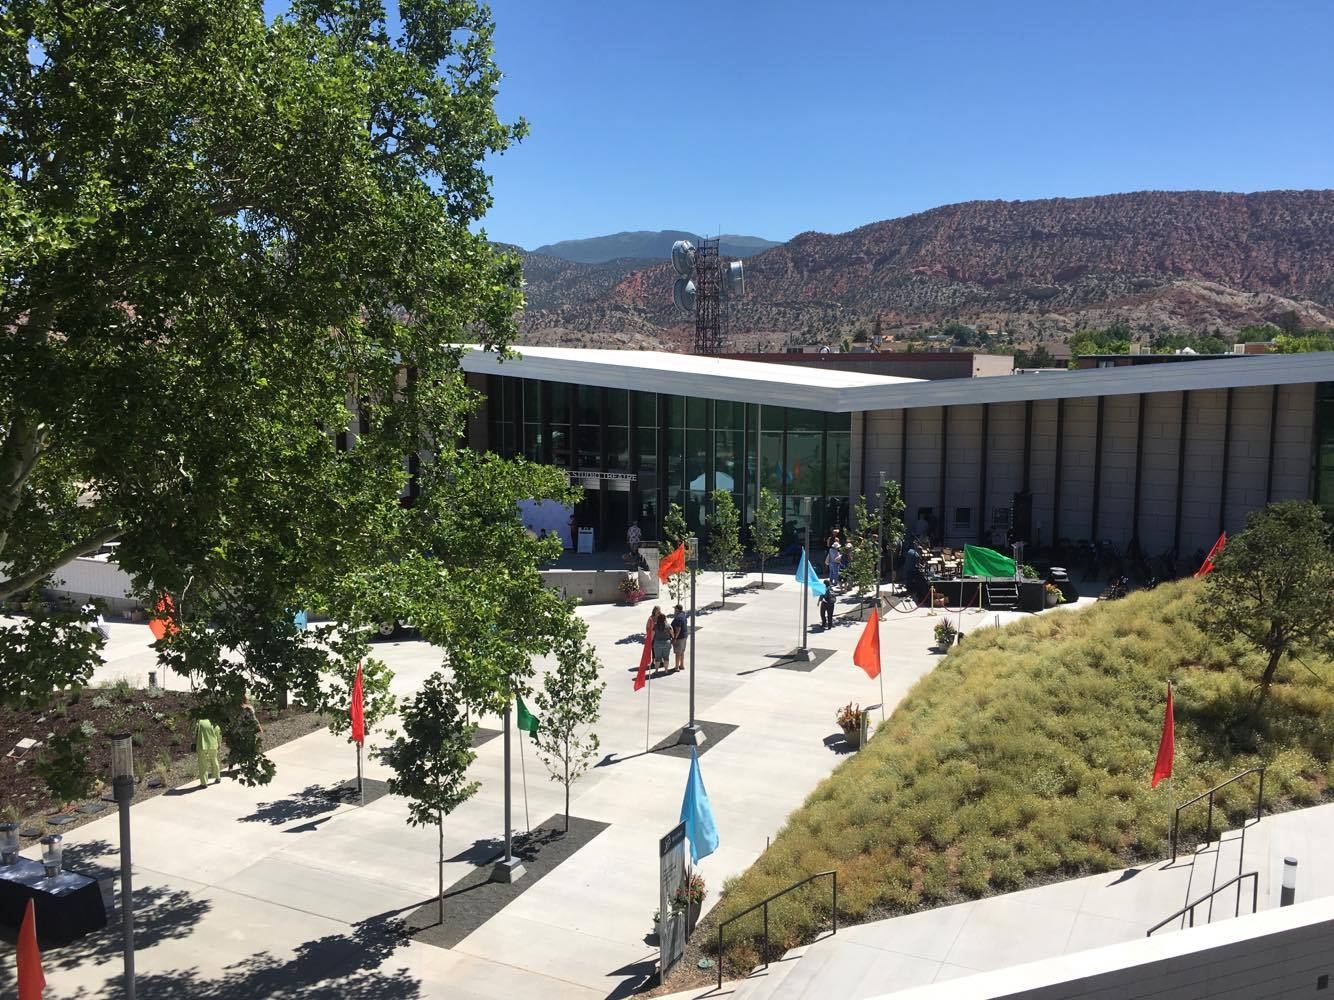 Views of the Eileen and Allen Anes Studio Theatre which is part of the new Beverley Taylor Sorenson Center for the Arts located on the Southern Utah University campus, Cedar City, Utah, July 7, 201   Photo by Hollie Reina, Cedar City News